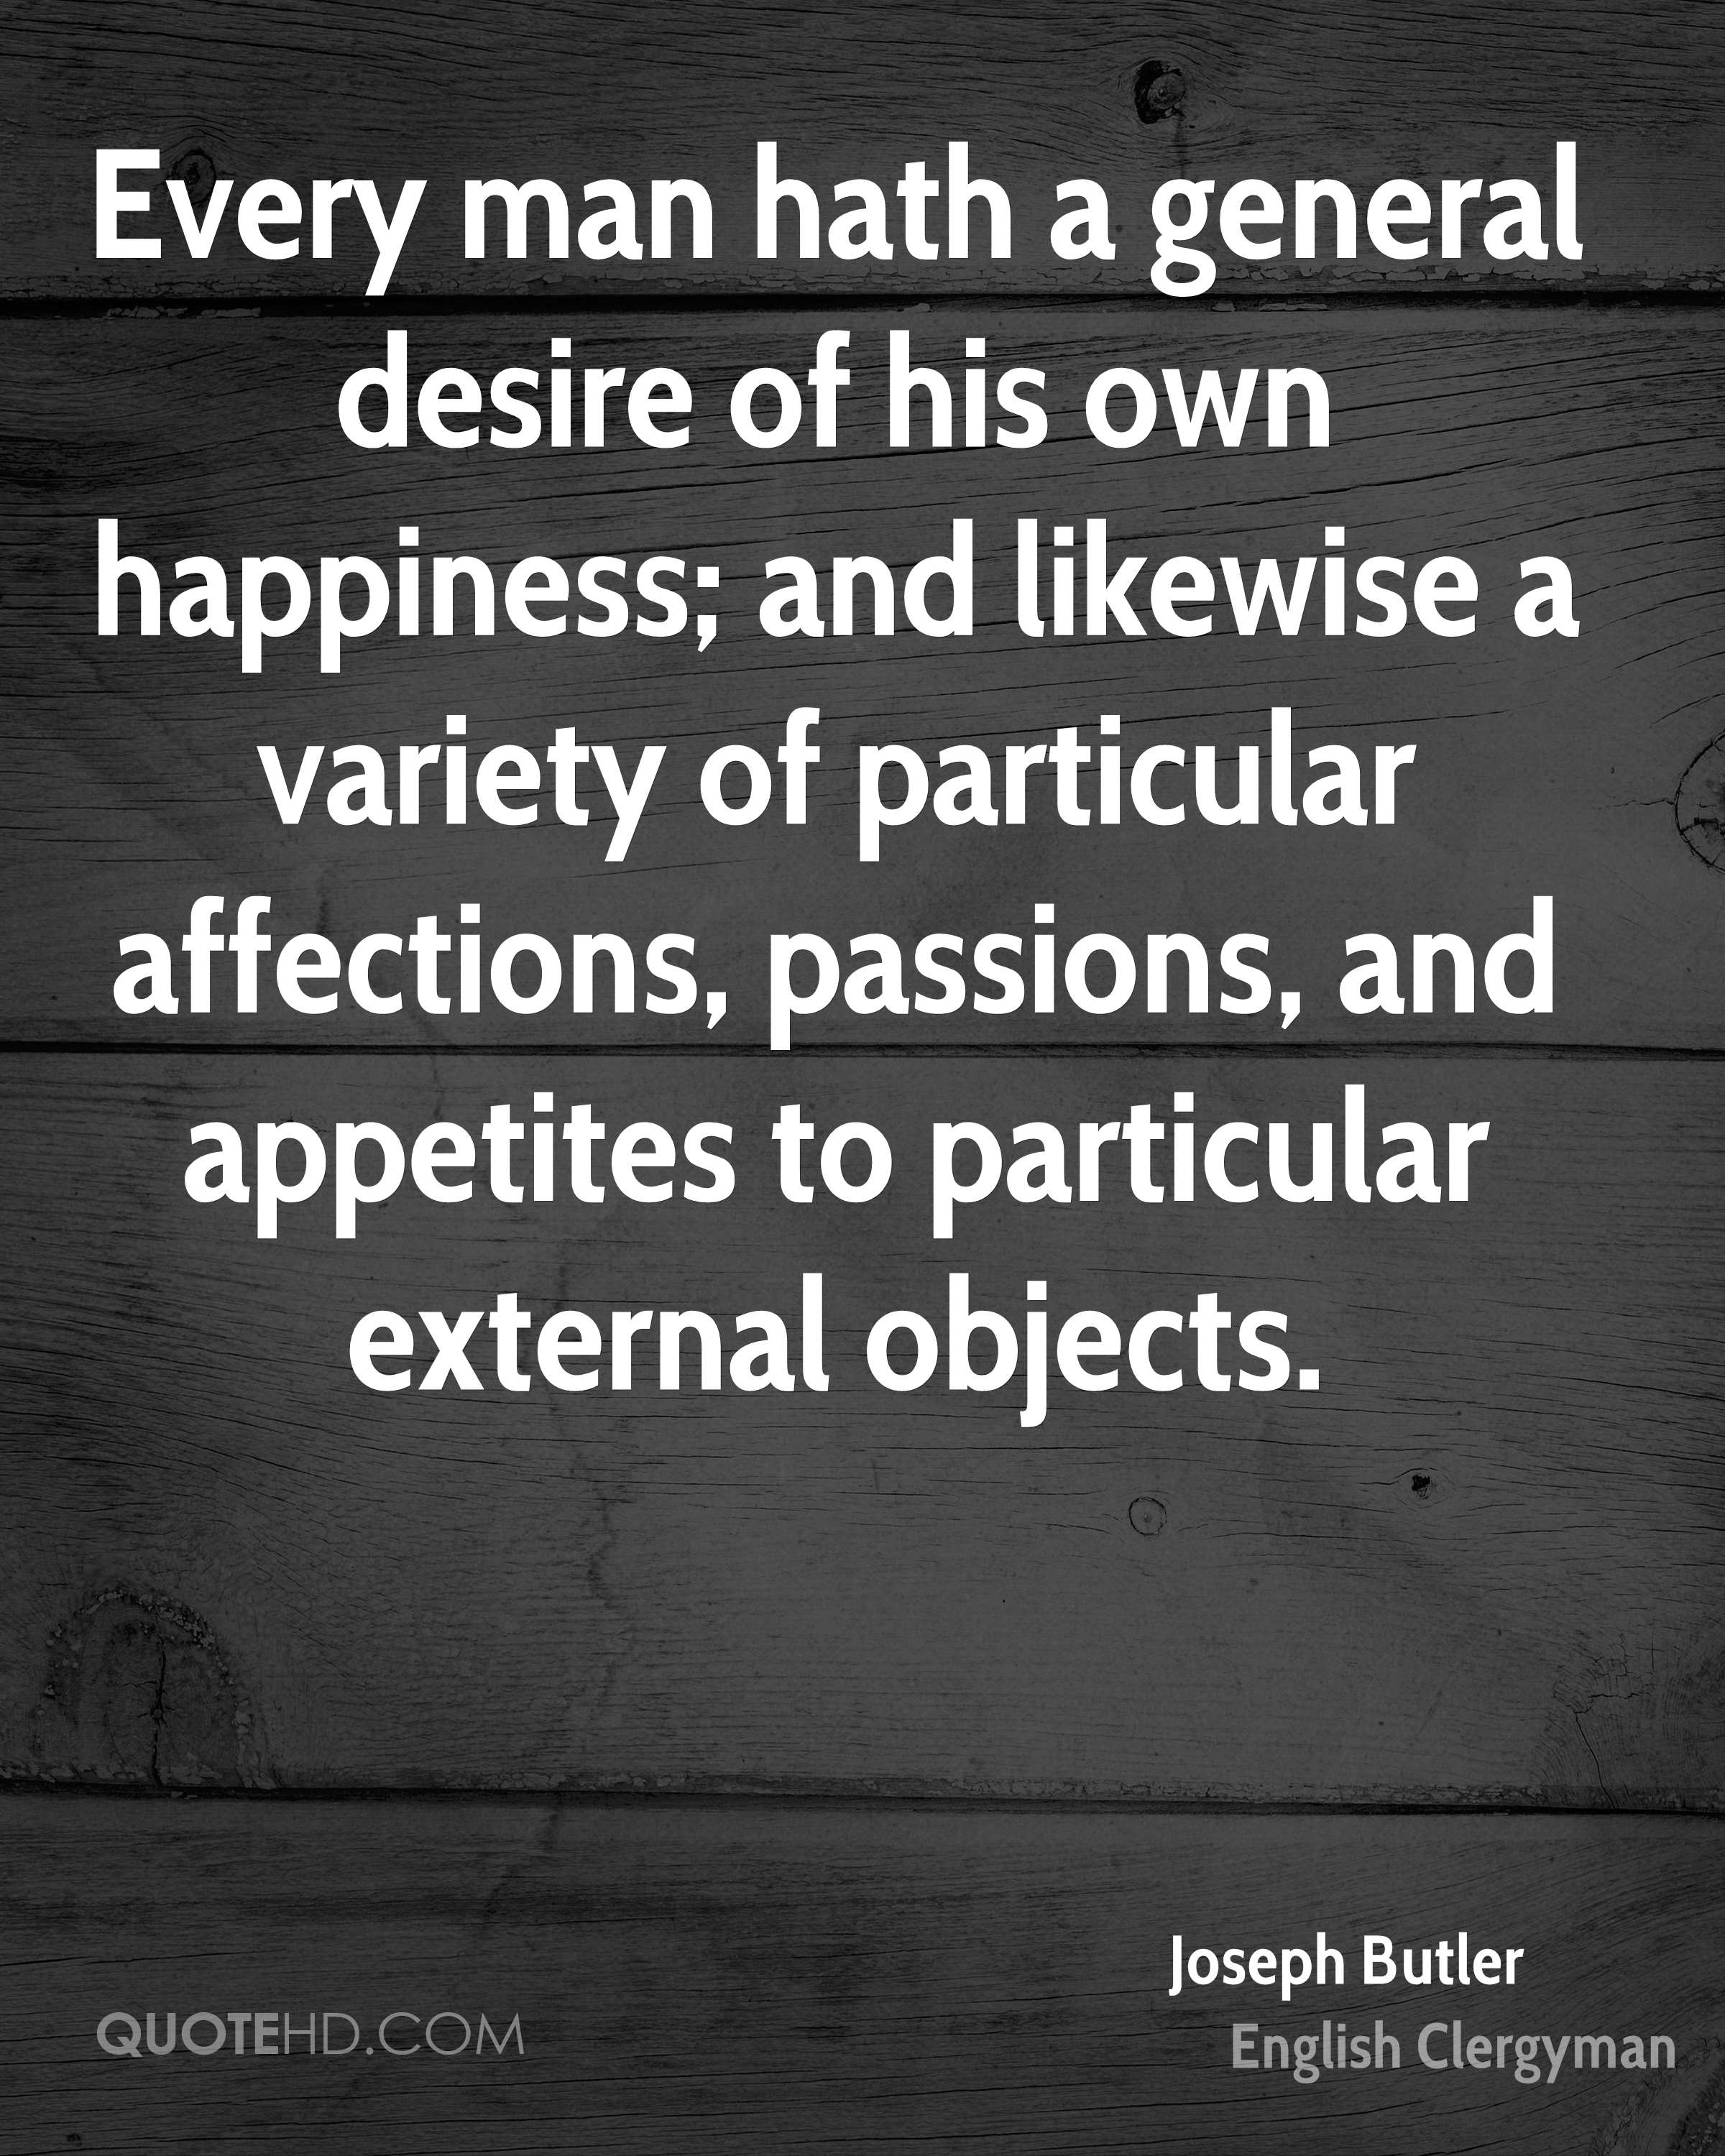 Every man hath a general desire of his own happiness; and likewise a variety of particular affections, passions, and appetites to particular external objects.